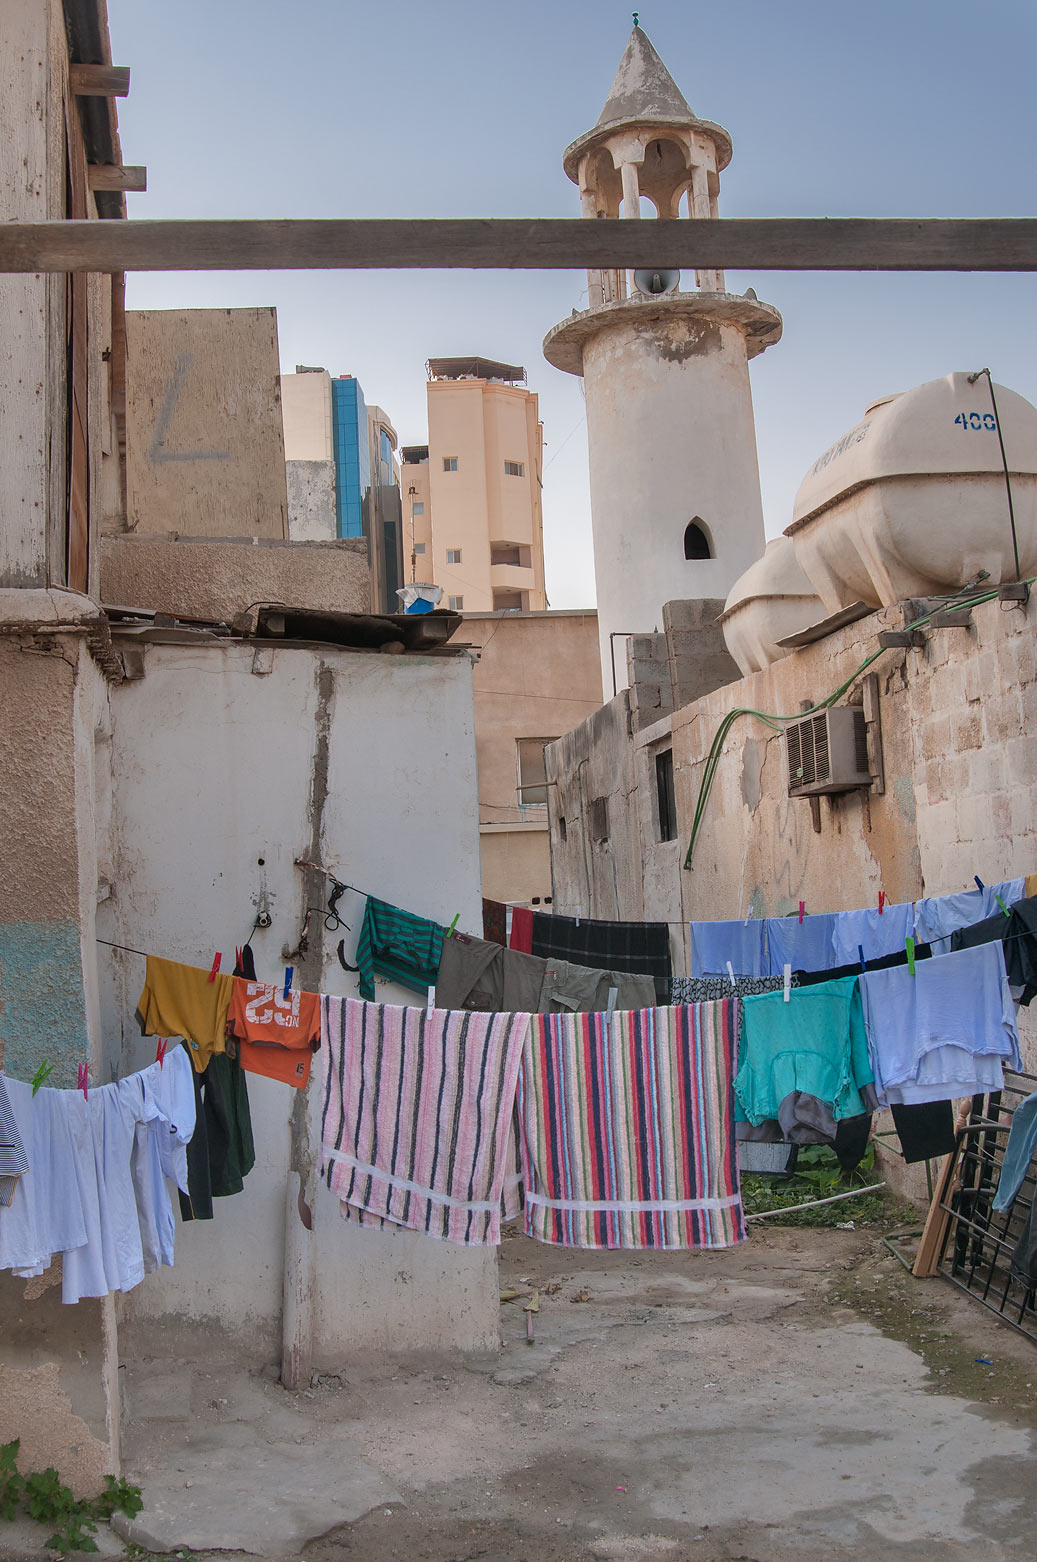 Drying laundry near Al Maymoun St., Musheirib area. Doha, Qatar